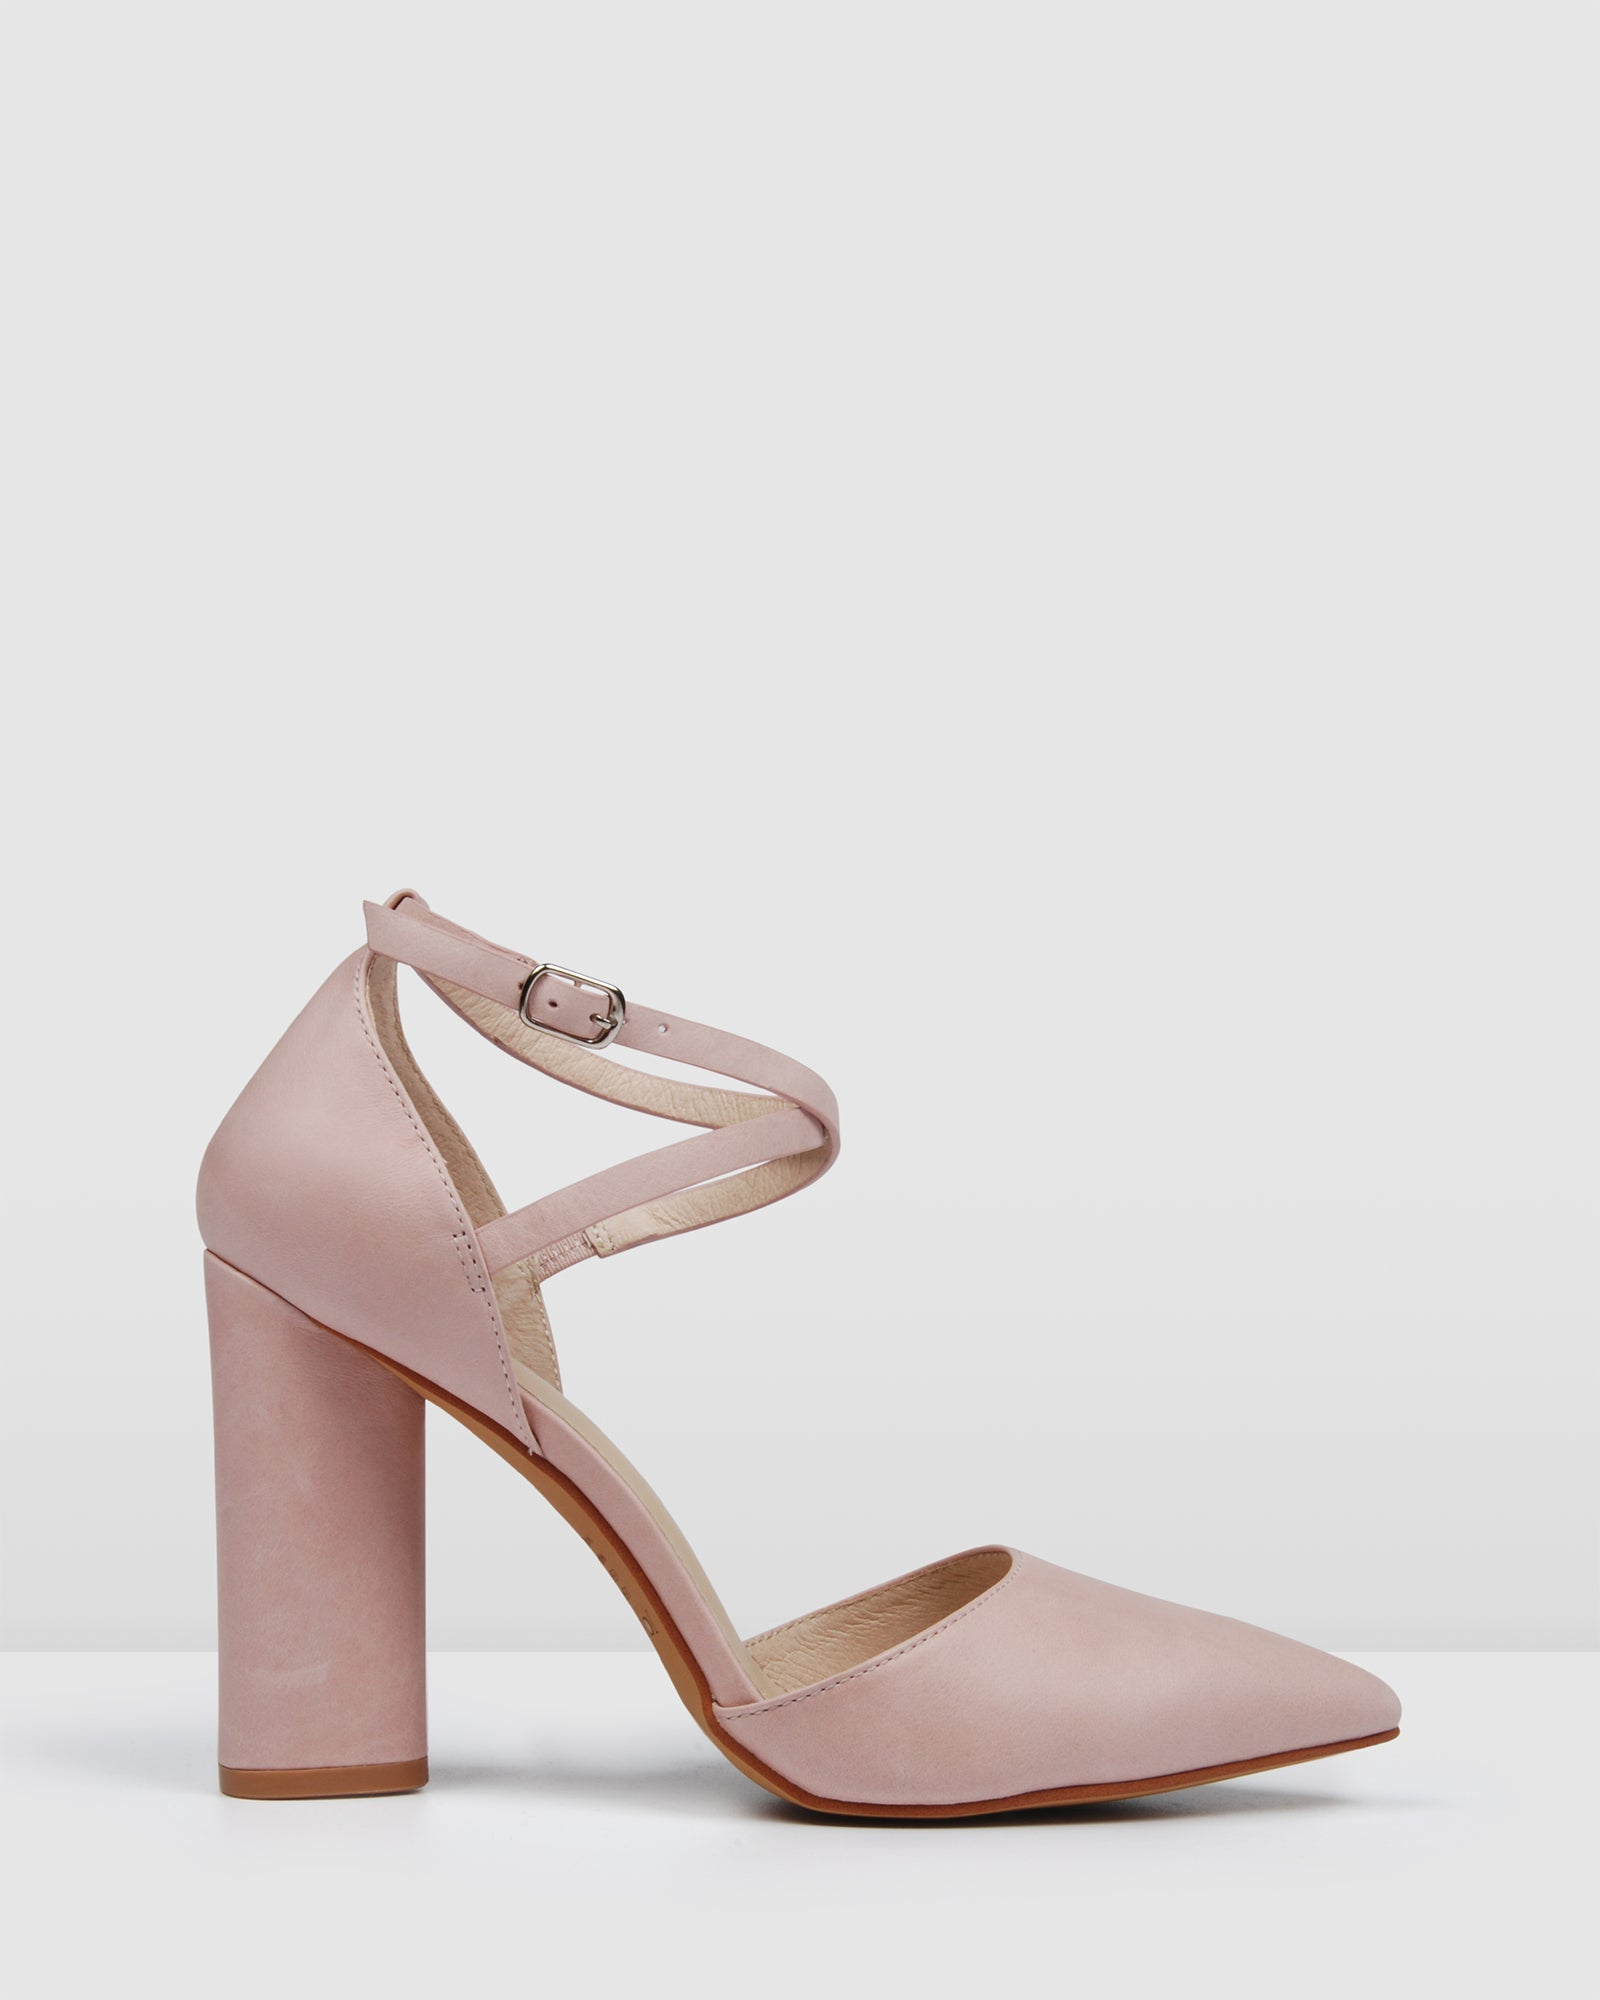 EASTBOUND HIGH HEELS LIGHT PINK LEATHER